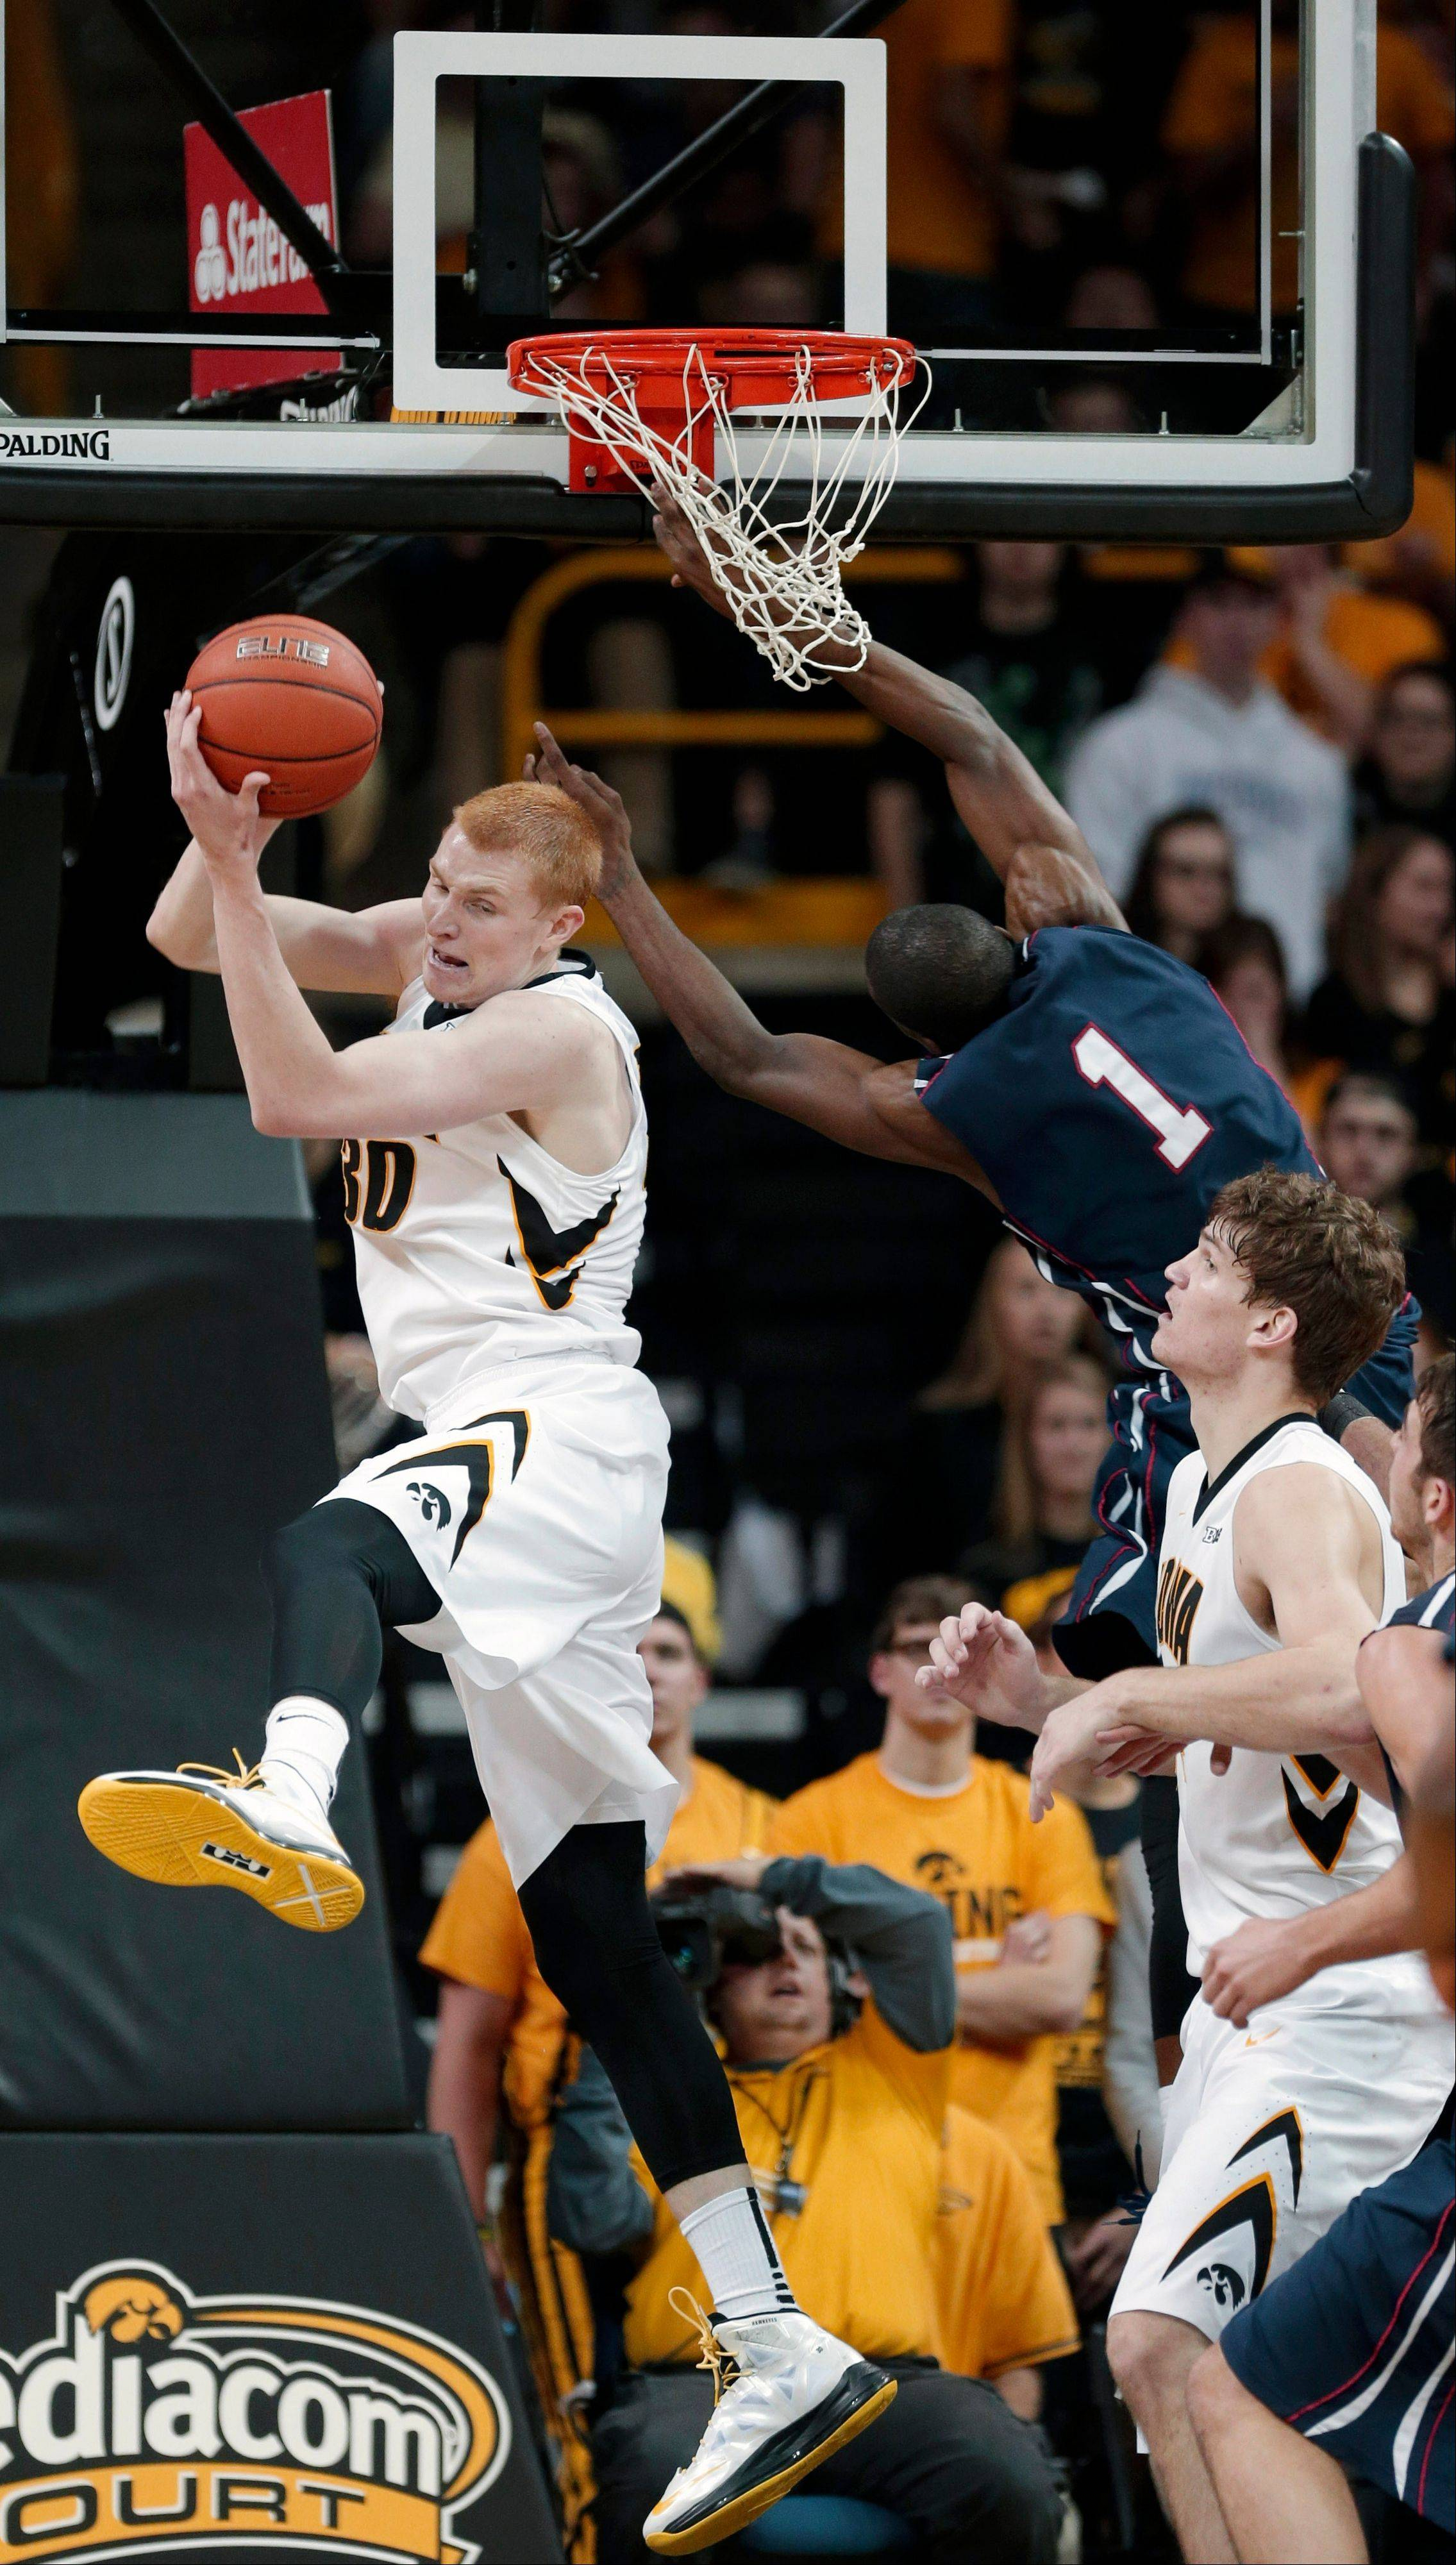 Iowa rolls past Penn 86-55